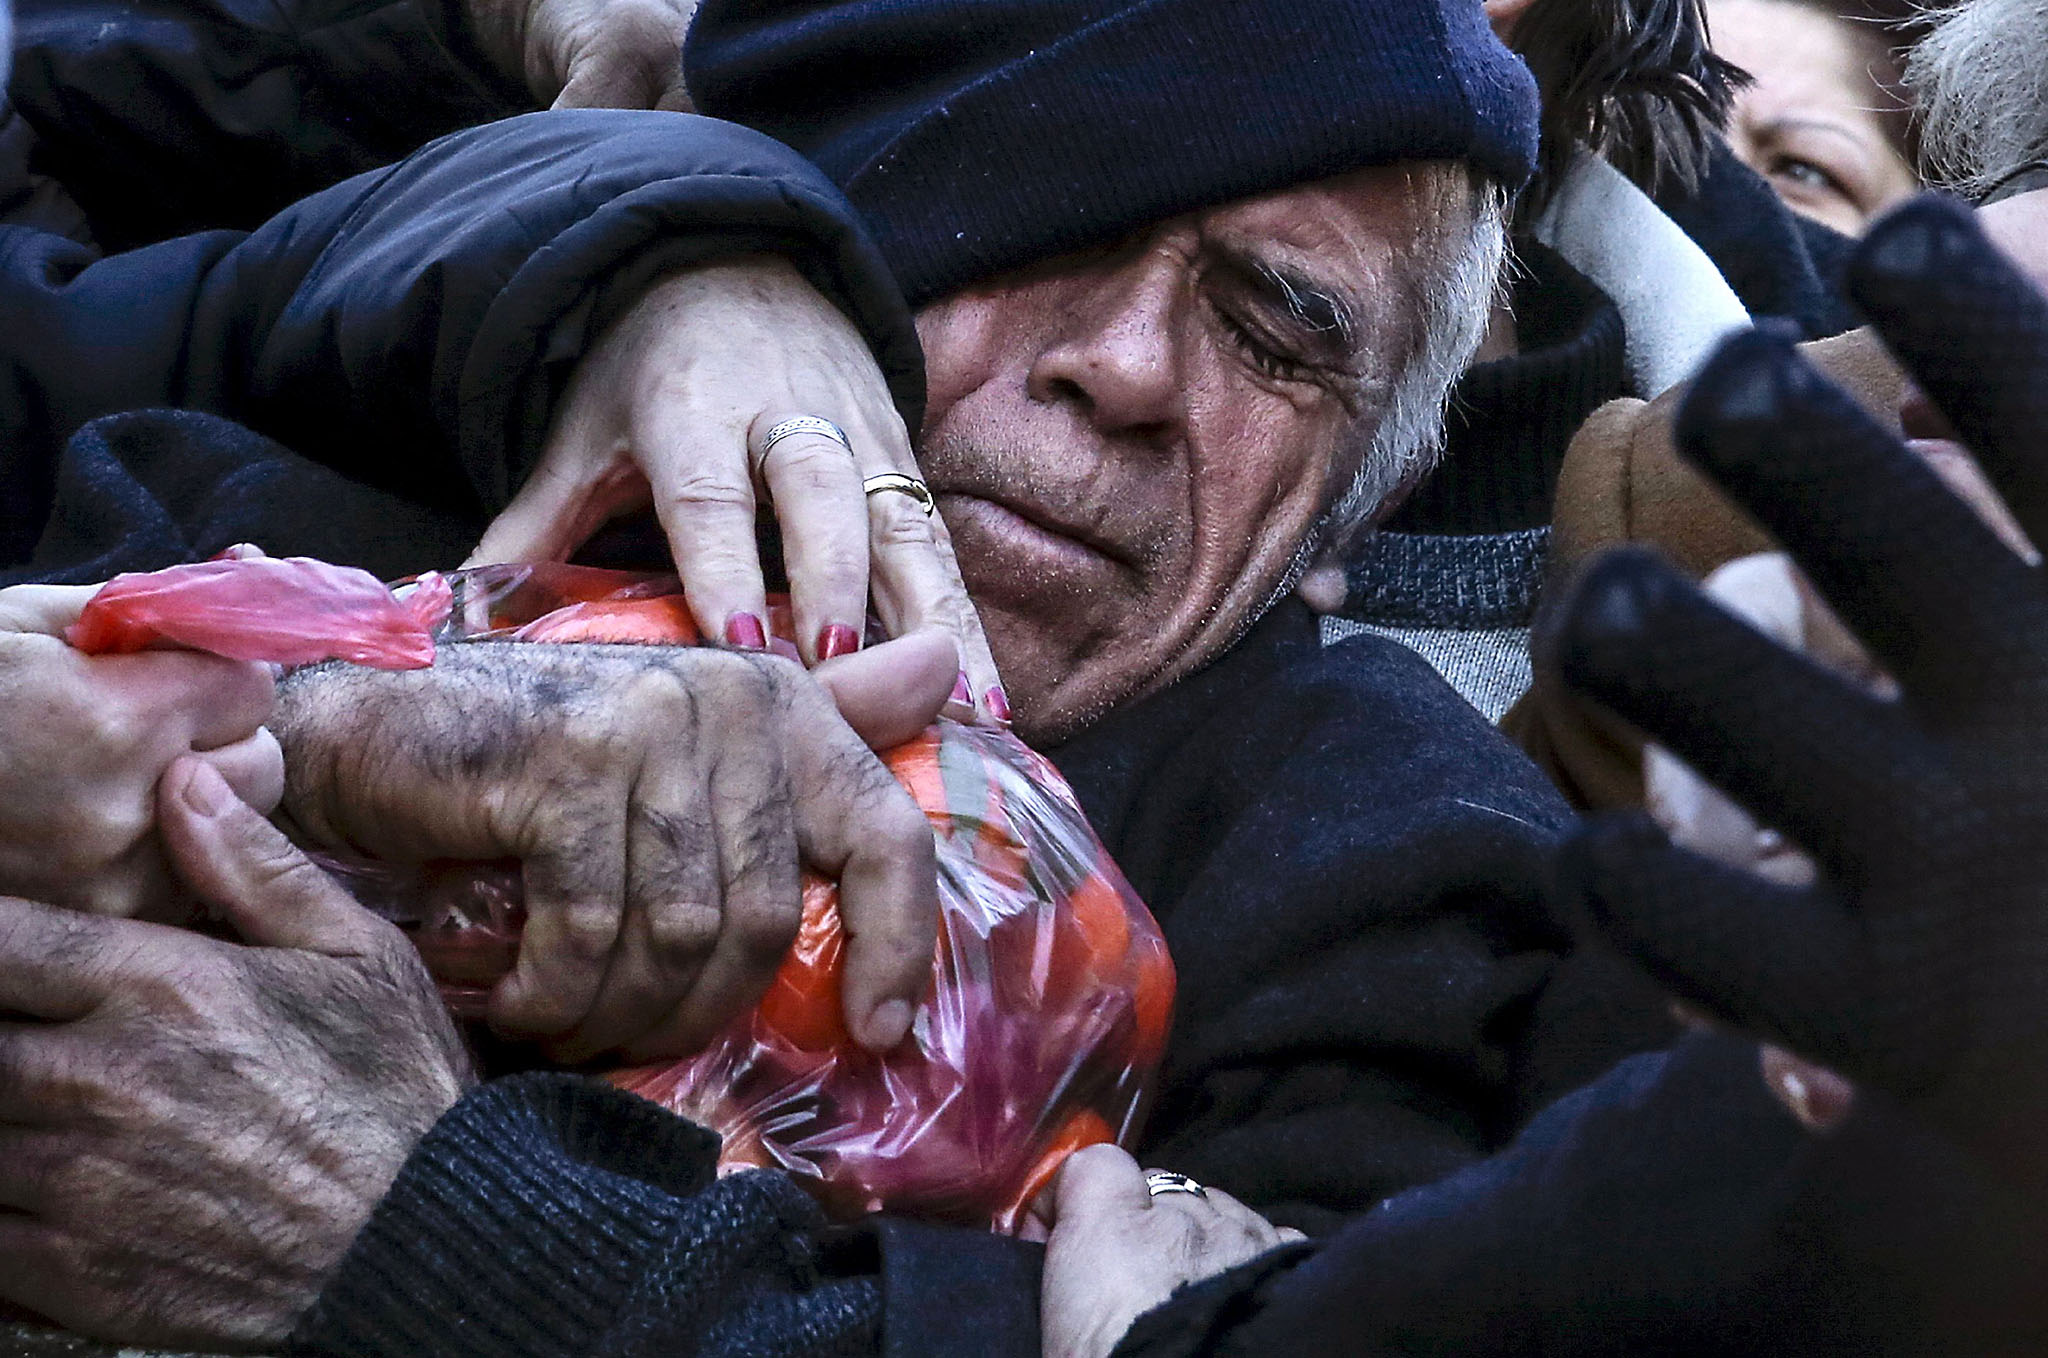 "ATTENTION EDITORS - REUTERS PICTURE HIGHLIGHT...ATTENTION EDITORS - REUTERS PICTURE HIGHLIGHTKON107A man grasps a bag of tangerines as people receive free produce, handed out by farmers, during a protest over the government's proposal to overhaul the country's ailing pension system in Athens, Greece, January 27, 2016. REUTERS/Alkis Konstantinidis      TPX IMAGES OF THE DAYREUTERS NEWS PICTURES HAS NOW MADE IT EASIER TO FIND THE BEST PHOTOS FROM THE MOST IMPORTANT STORIES AND TOP STANDALONES EACH DAY. Search for ""TPX"" in the IPTC Supplemental Category field or ""IMAGES OF THE DAY"" in the Caption field and you will find a selection of 80-100 of our daily Top Pictures.REUTERS NEWS PICTURES. TEMPLATE OUT"